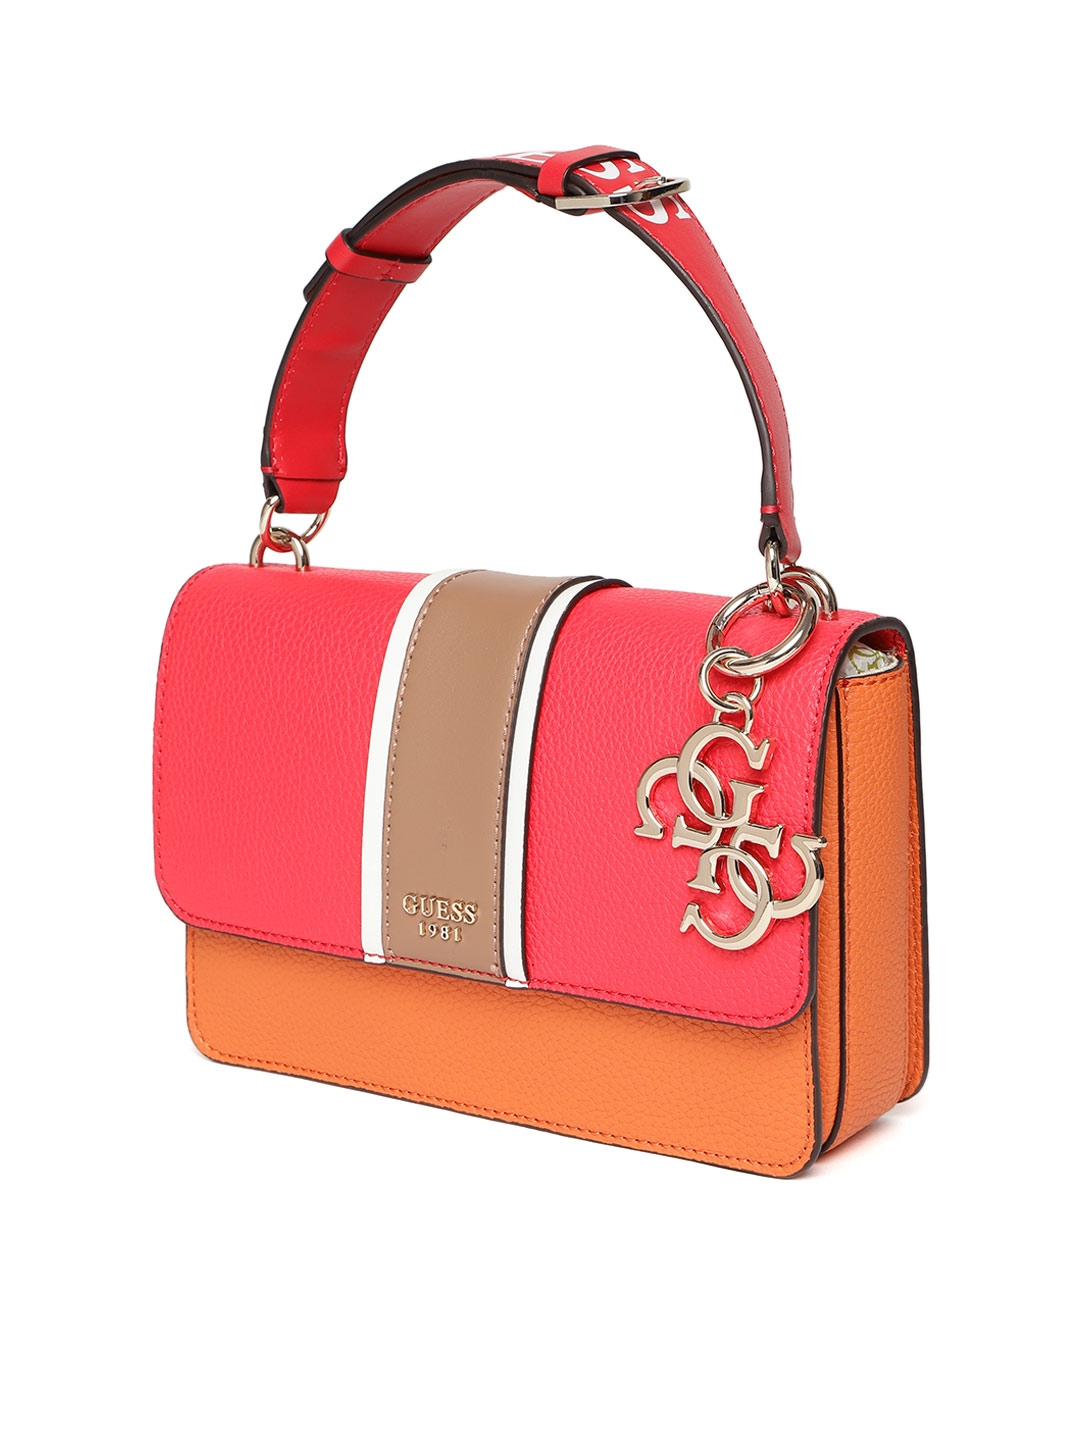 f55d6419070d Buy GUESS Coral Red   Orange Colourblocked Satchel - Handbags for ...